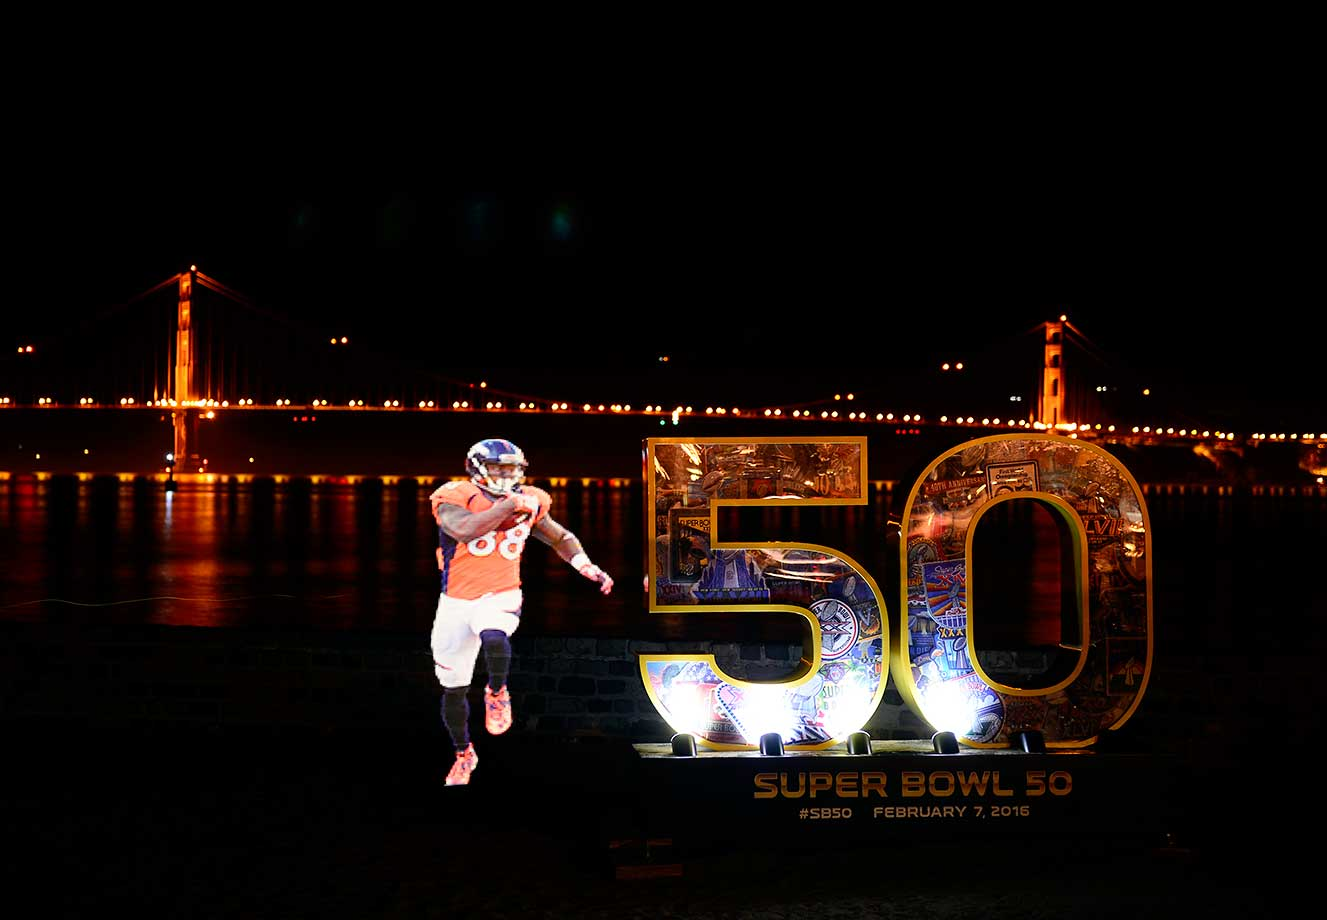 A still photo of Demaryius Thomas painted with light using a Pixelstick during a 13-second long exposure.  Golden Gate Bridge in background.